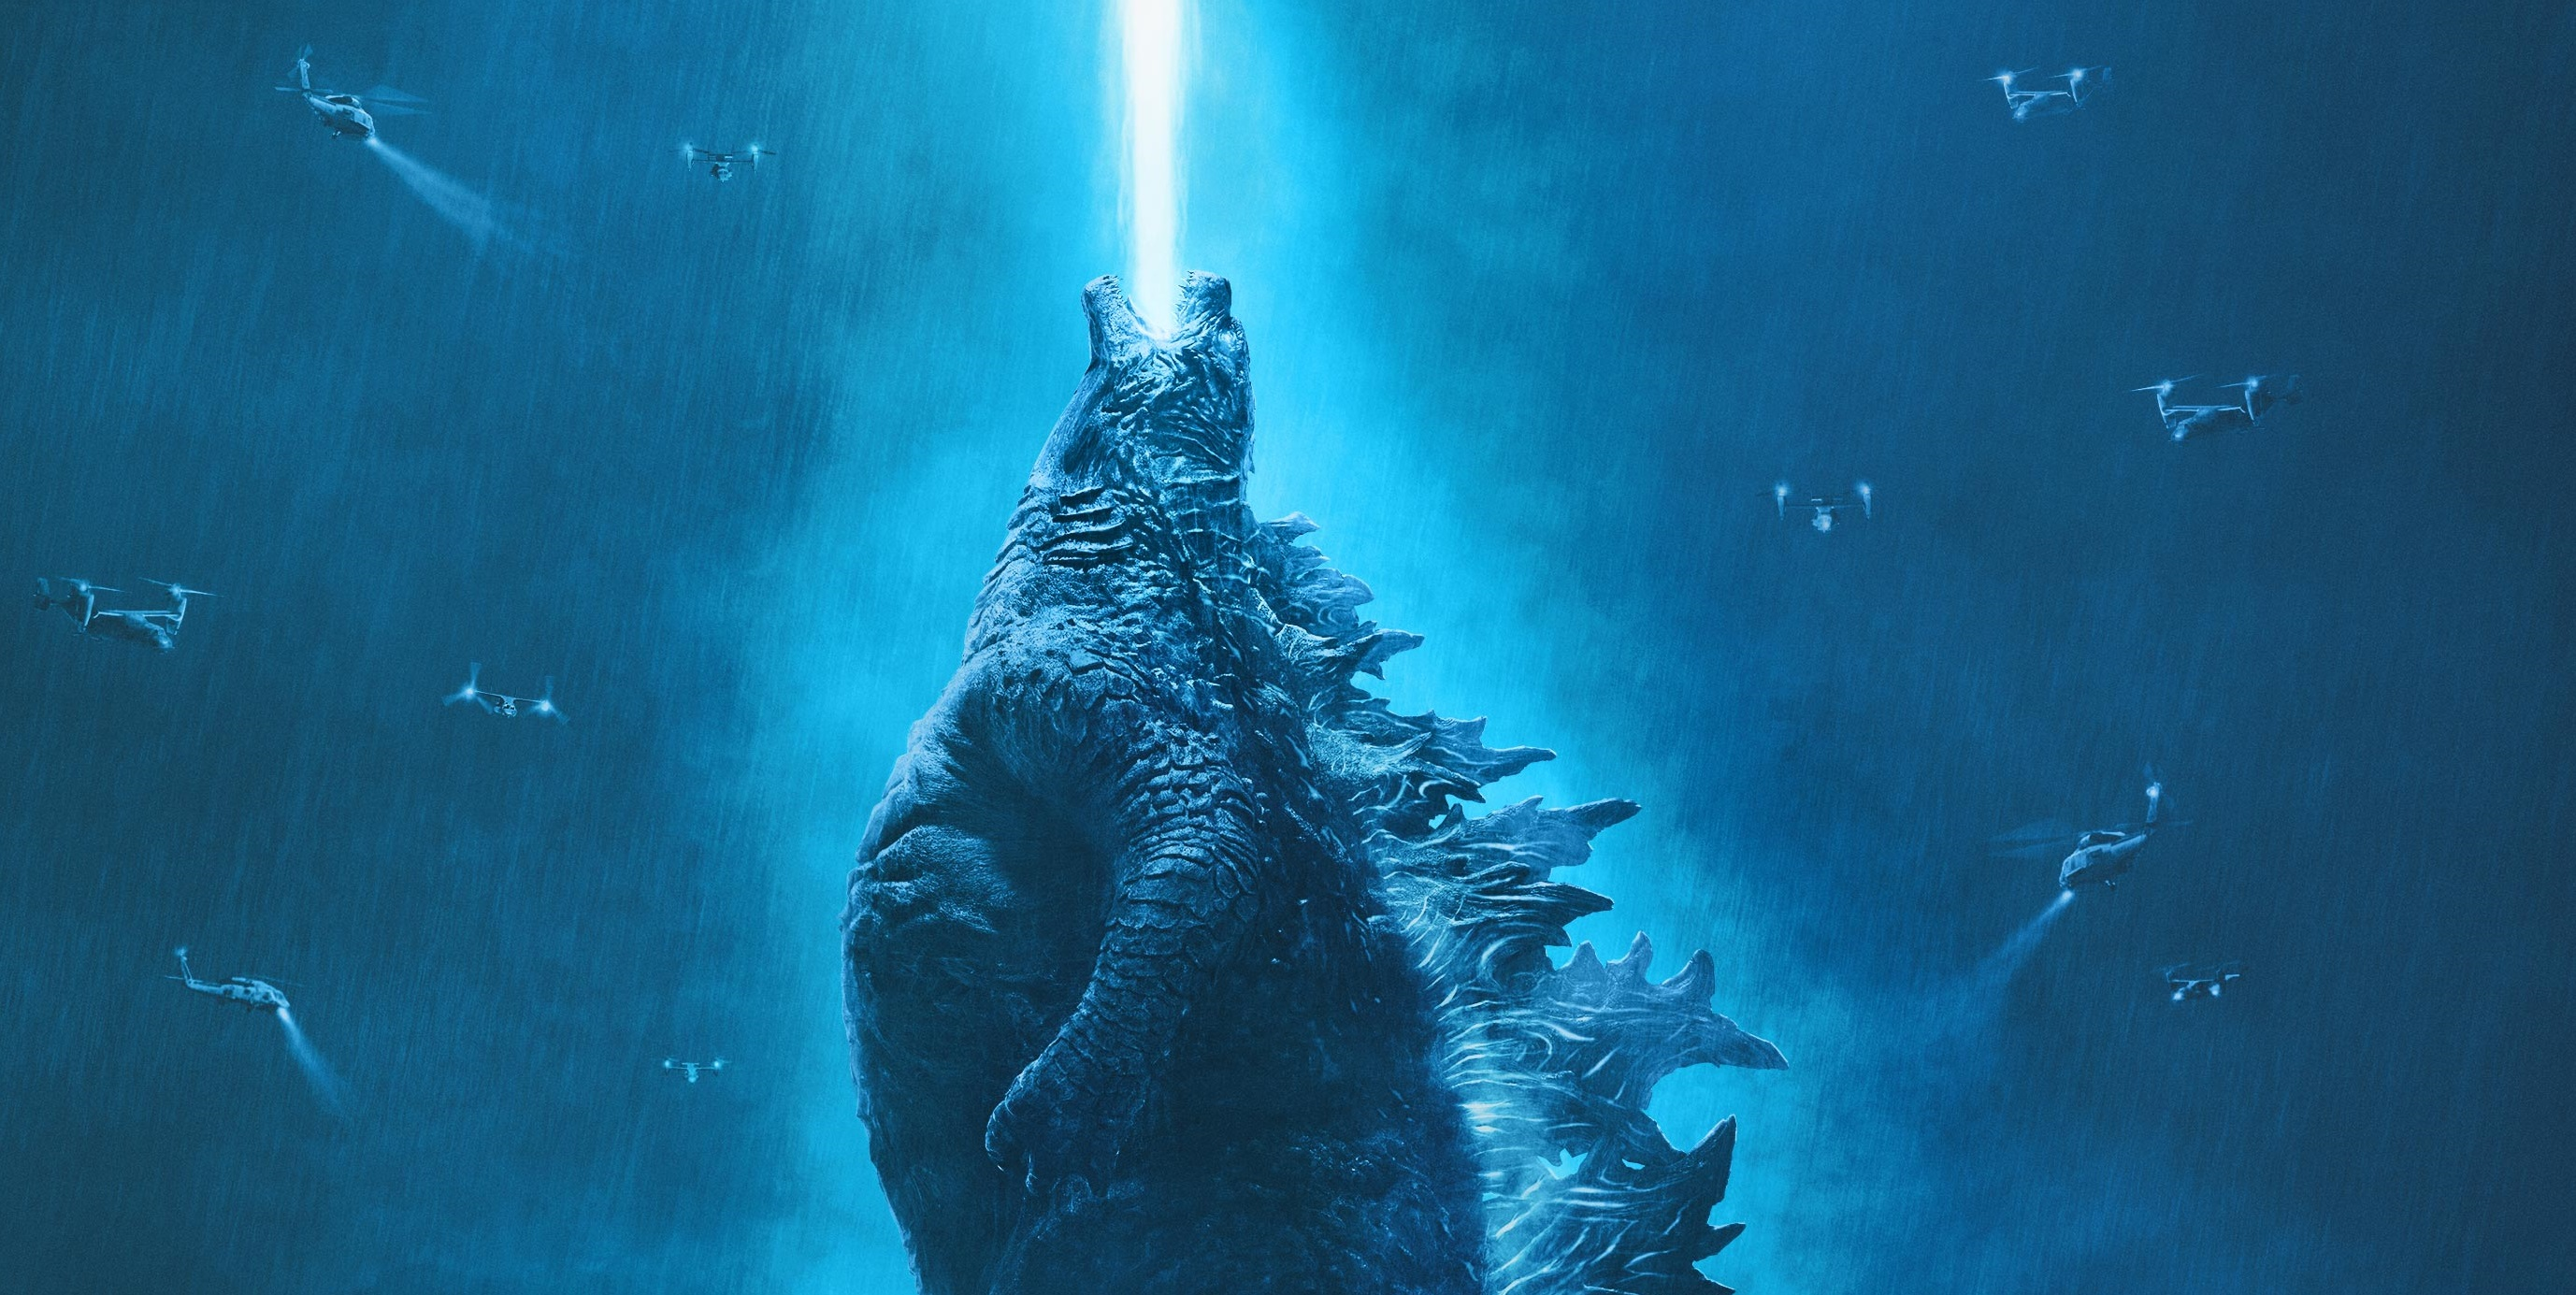 New Poster for 'Godzilla: King of the Monsters' Stomps Online